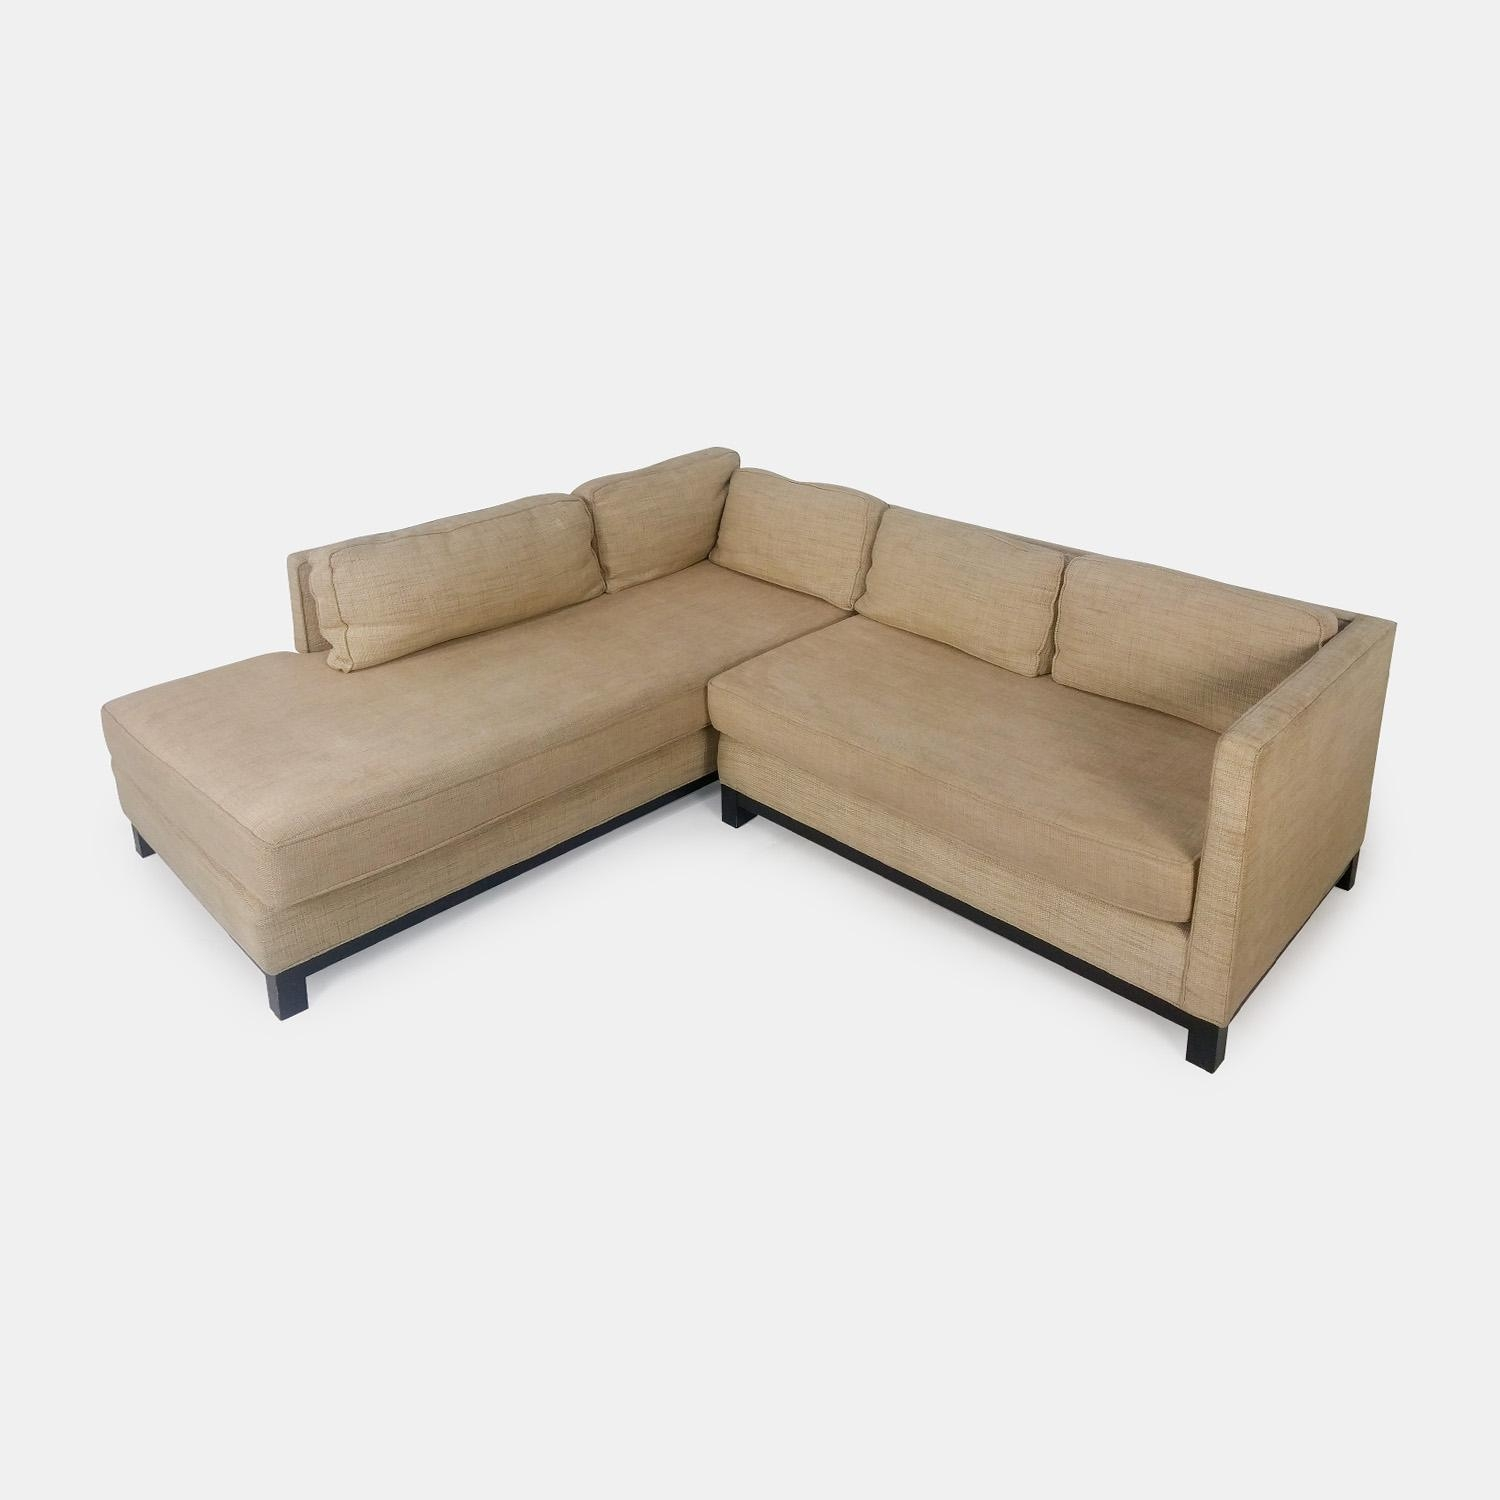 gold sectional sofa proteas bunk bed australia 15 collection of ideas